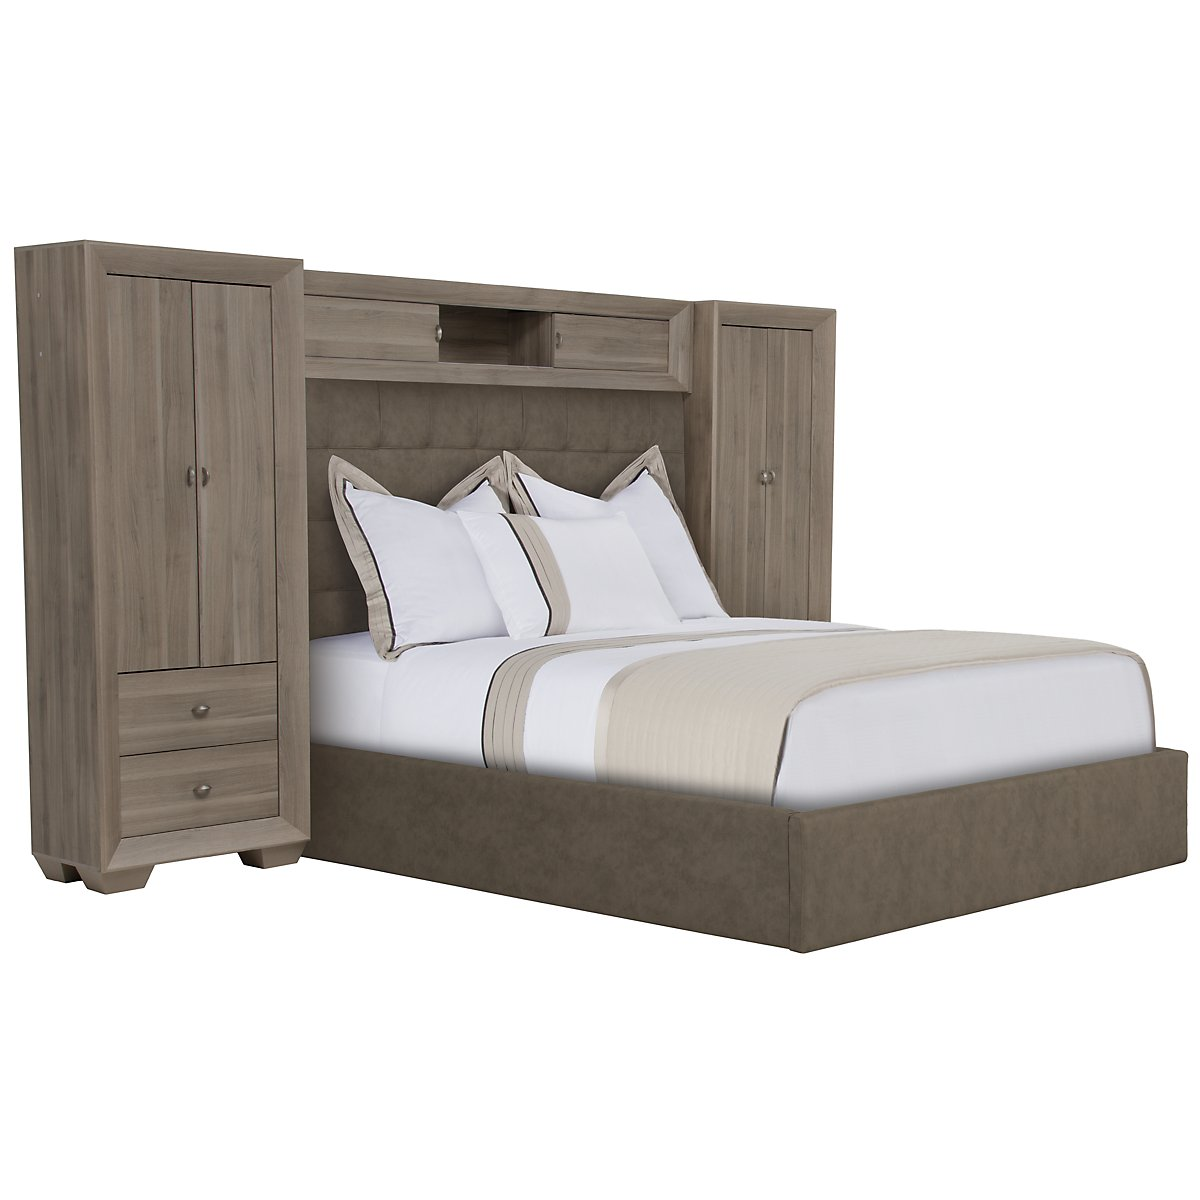 Adele2 Light Tone Upholstered Wall Bed